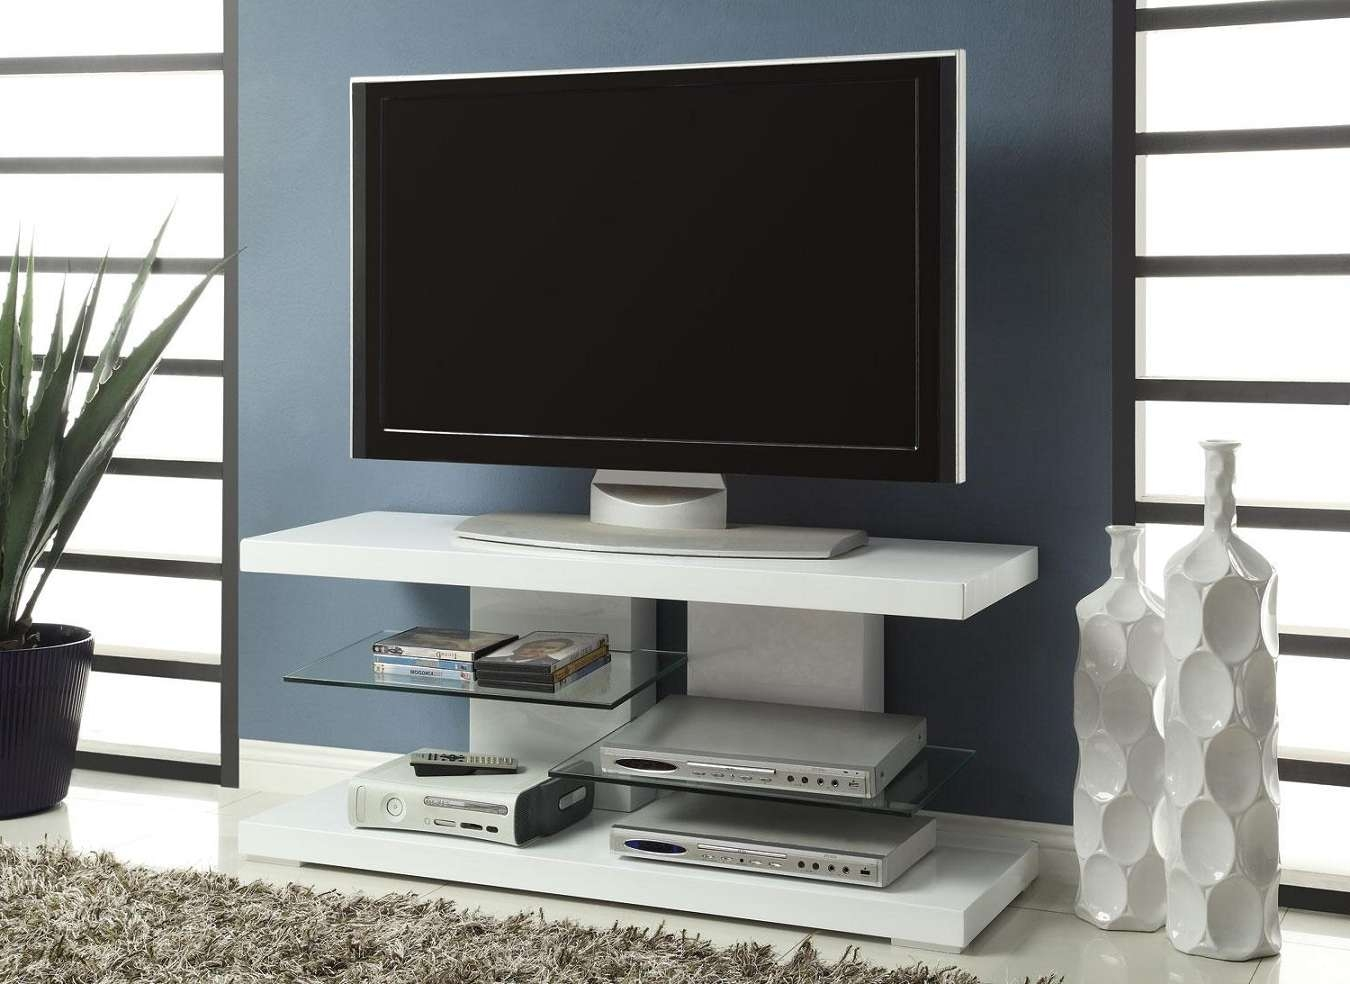 Modern Black Tone Wide Screen Tv Stand With Display Shelves And In Wide Screen Tv Stands (View 11 of 15)